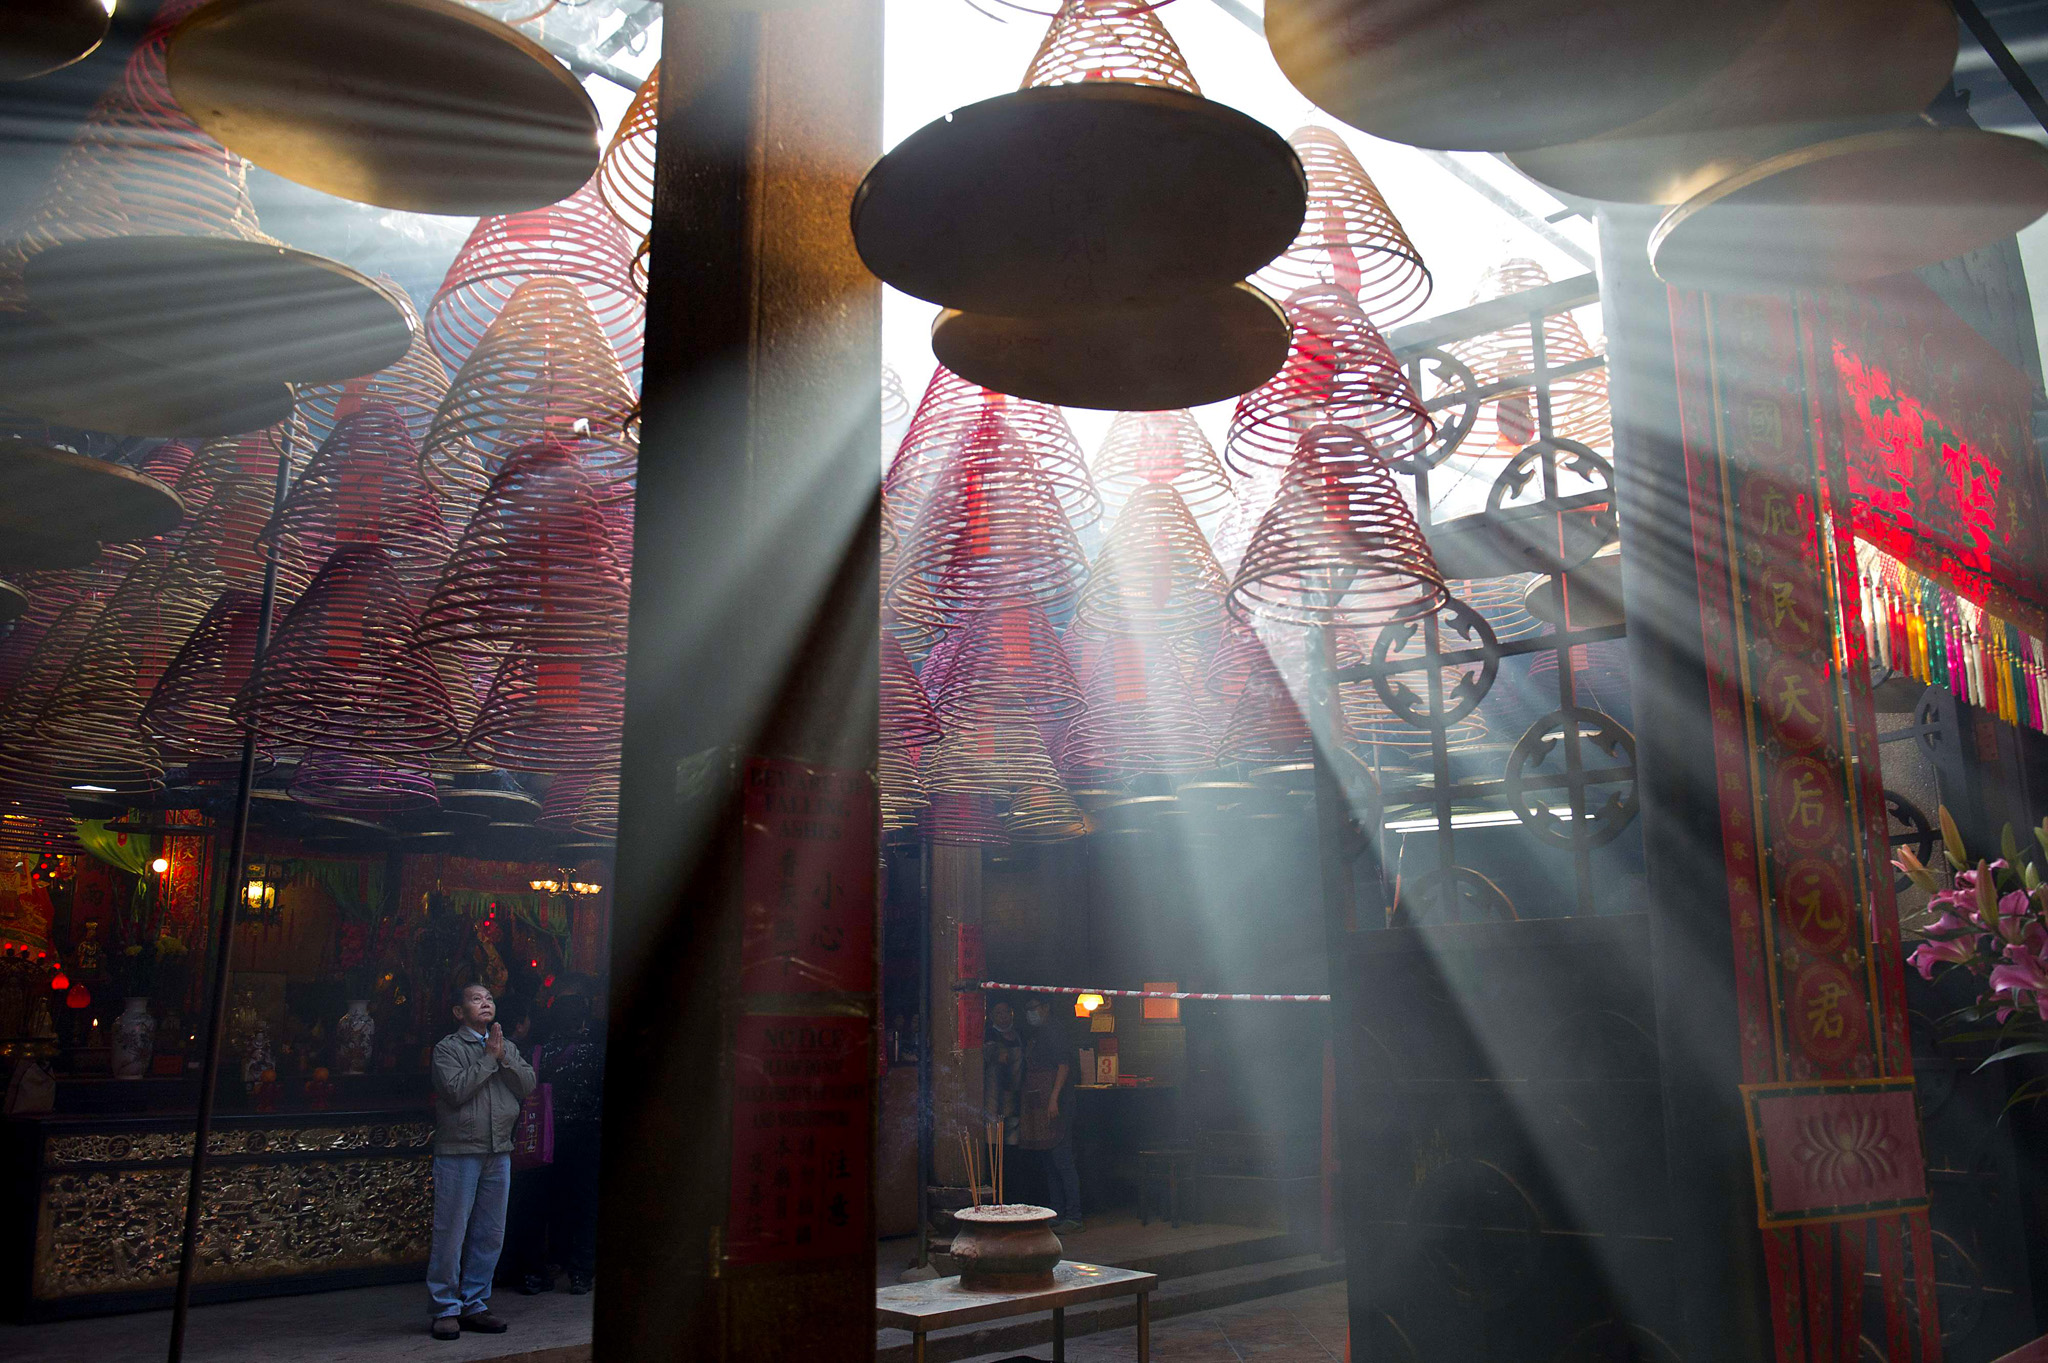 A man (R) prays as sunlight shines throu...A man (R) prays as sunlight shines through hanging incense coils at the Tin Hau Temple in the Yau Ma Tei area of Hong Kong on the fourth day of the Lunar New Year holiday on February 3, 2014.  Chinese communities across Asia came together to usher in the Year of the Horse, with tens of thousands of worshippers flocking to temples across China to pray for good fortune in the new year.